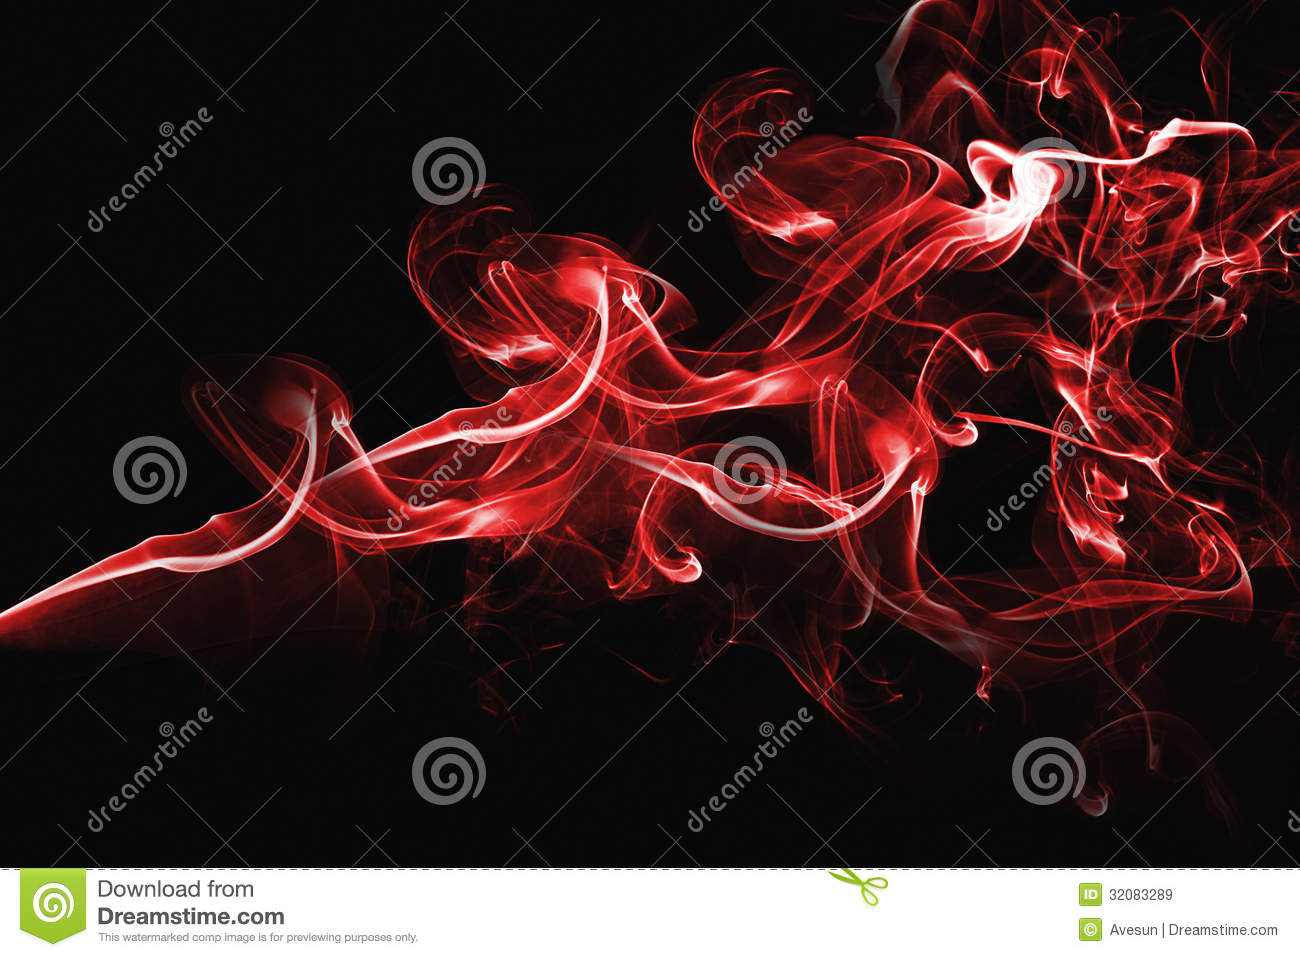 Red Abstract Smoke Design Royalty Free Stock Images ...